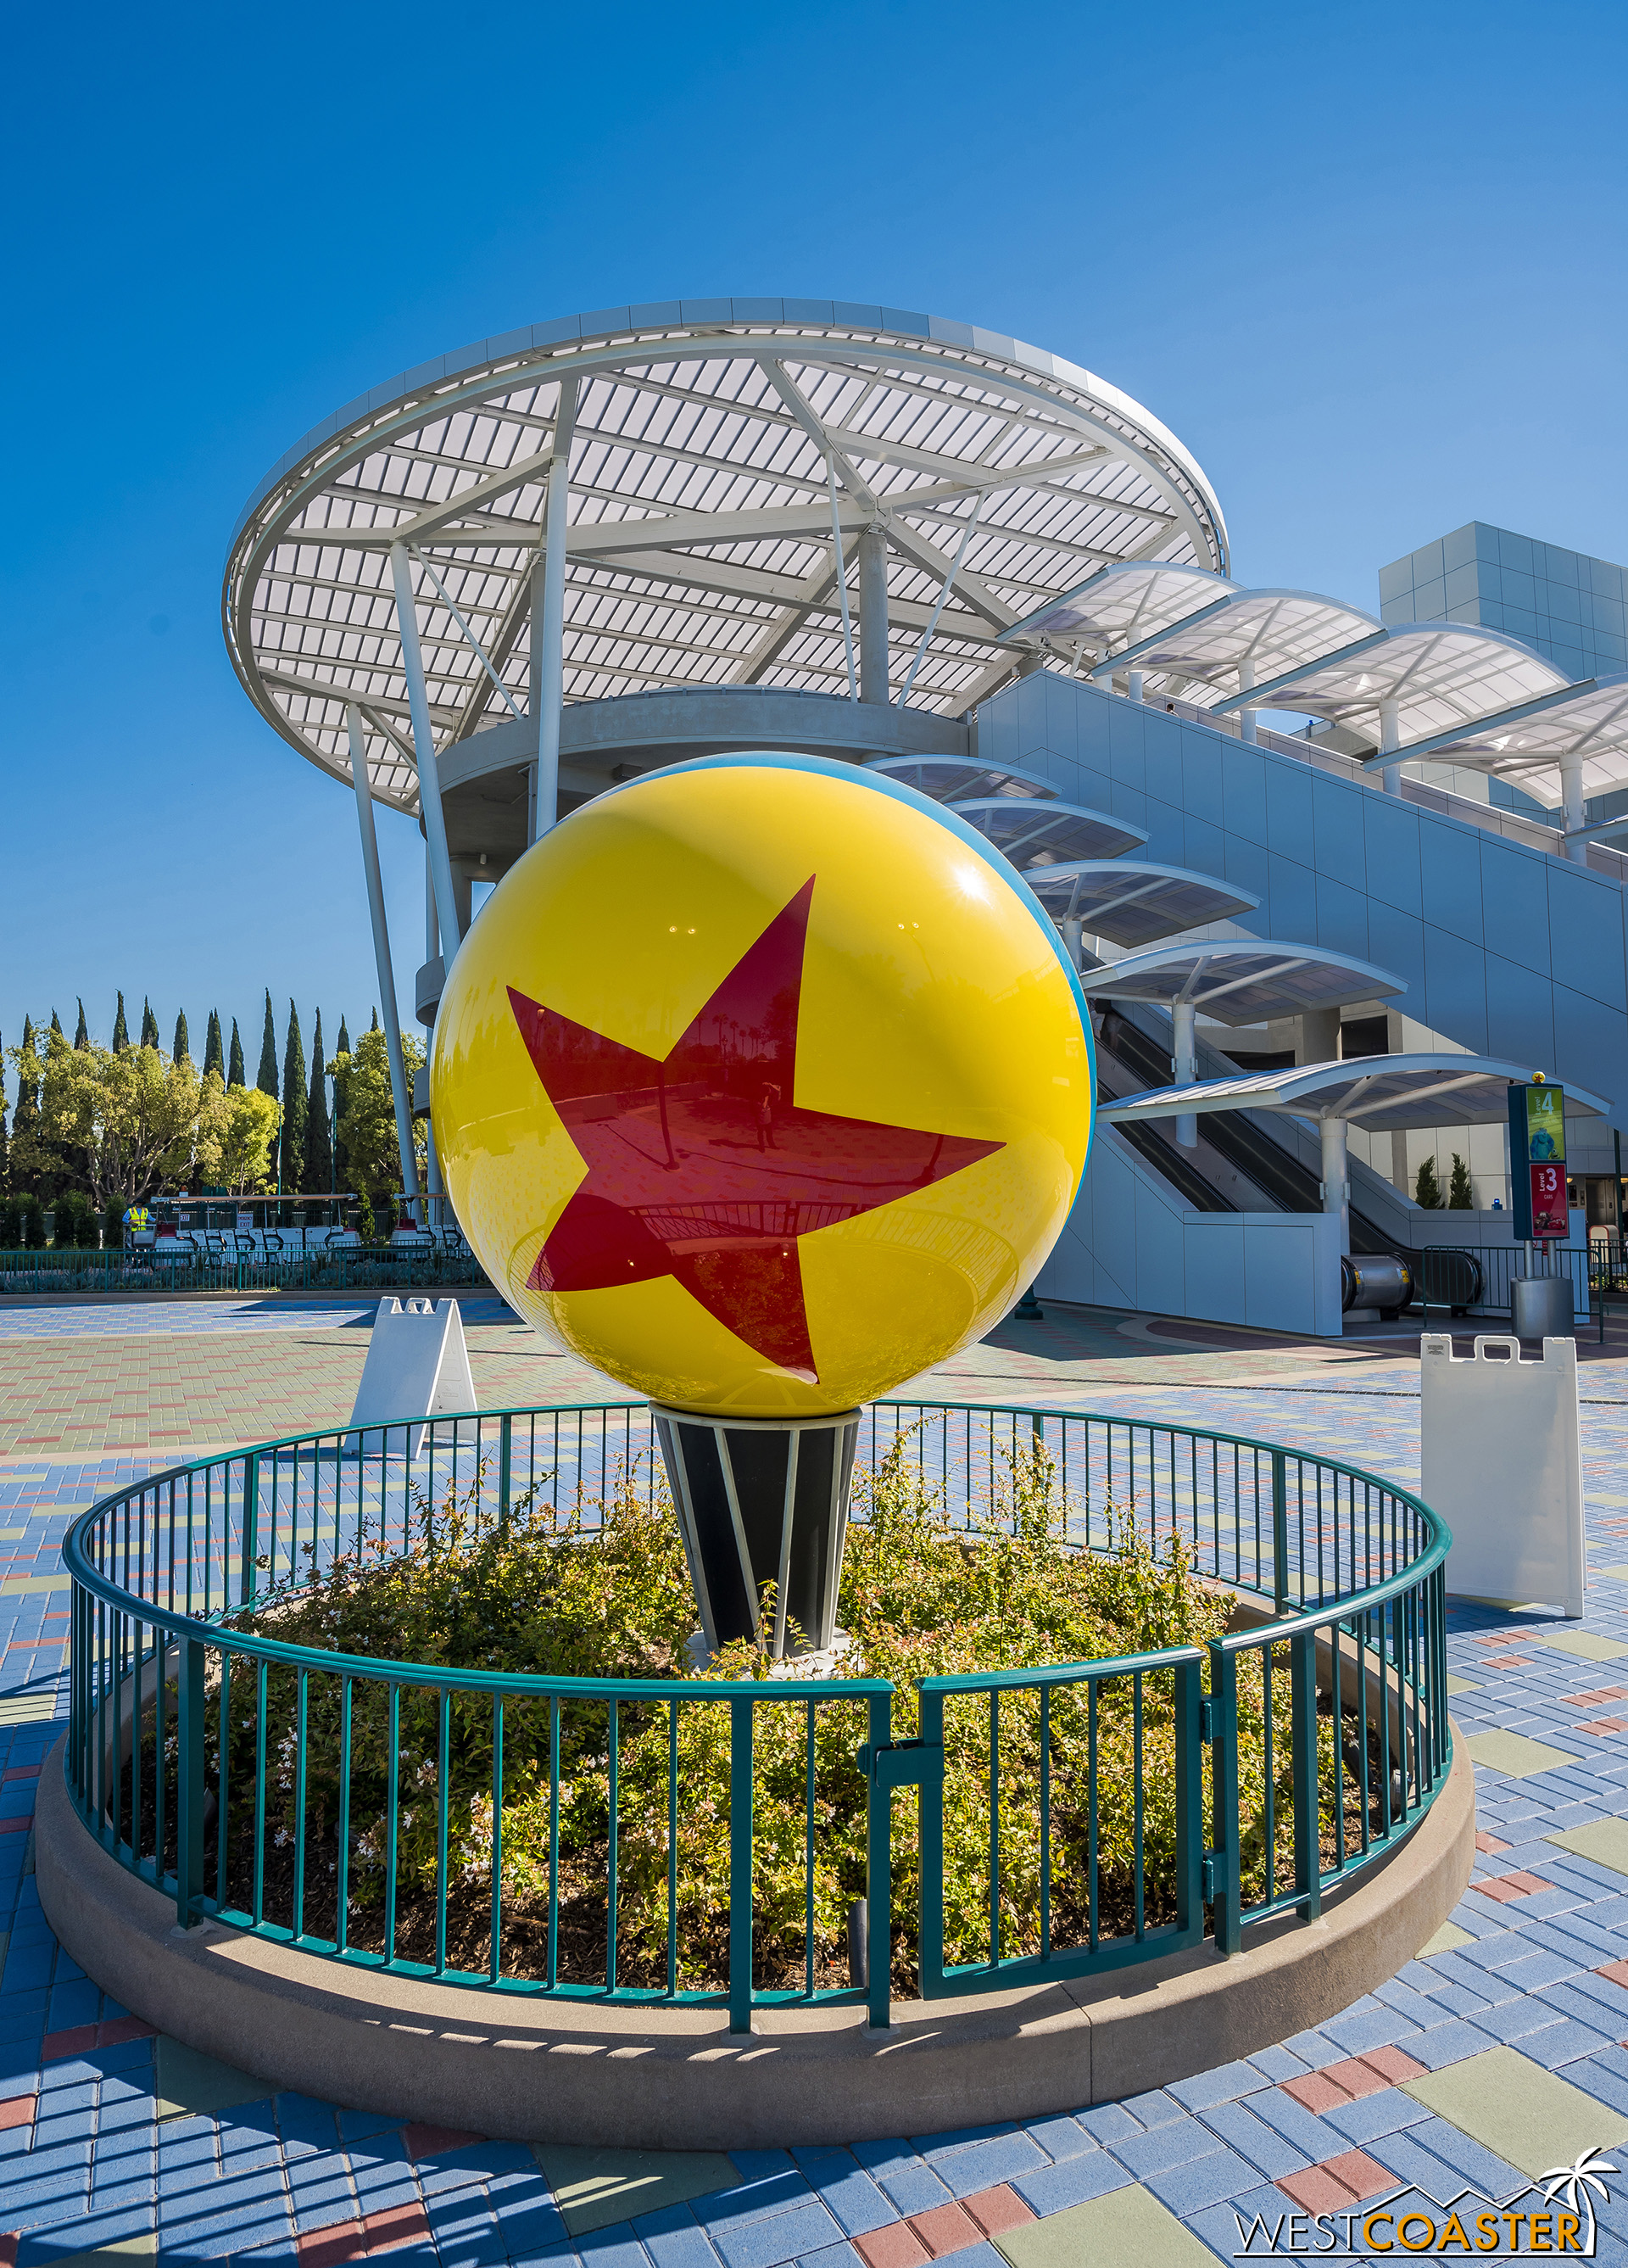 Welcome to the Pixar Pals parking structure! The Pixar Ball reinforces that it's Pixar.